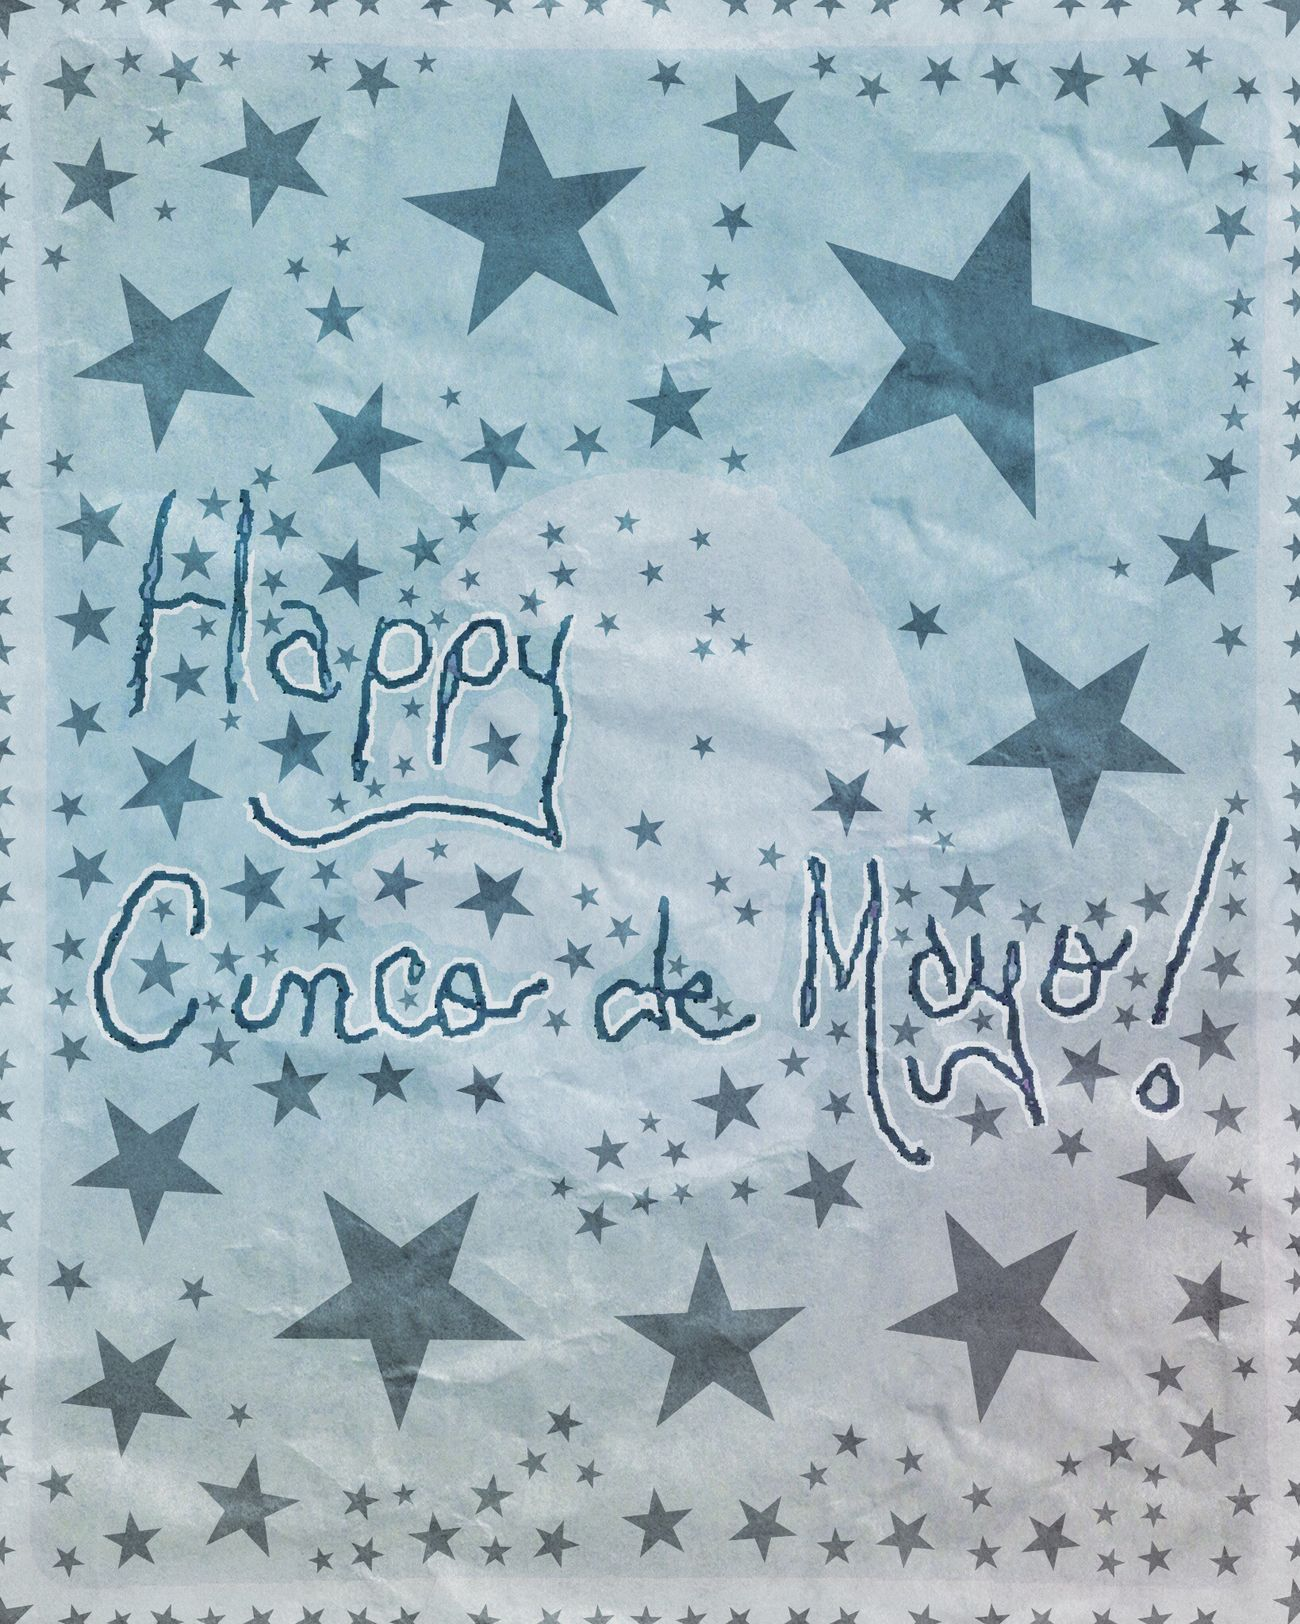 Happy Cinco de Mayo! Full Frame No People Digital Art Pen Ink Font Handwritten Illustration Streamzoofamily Mikefl99 ArtWork Freshness Paper Cinco De Mayo 2017